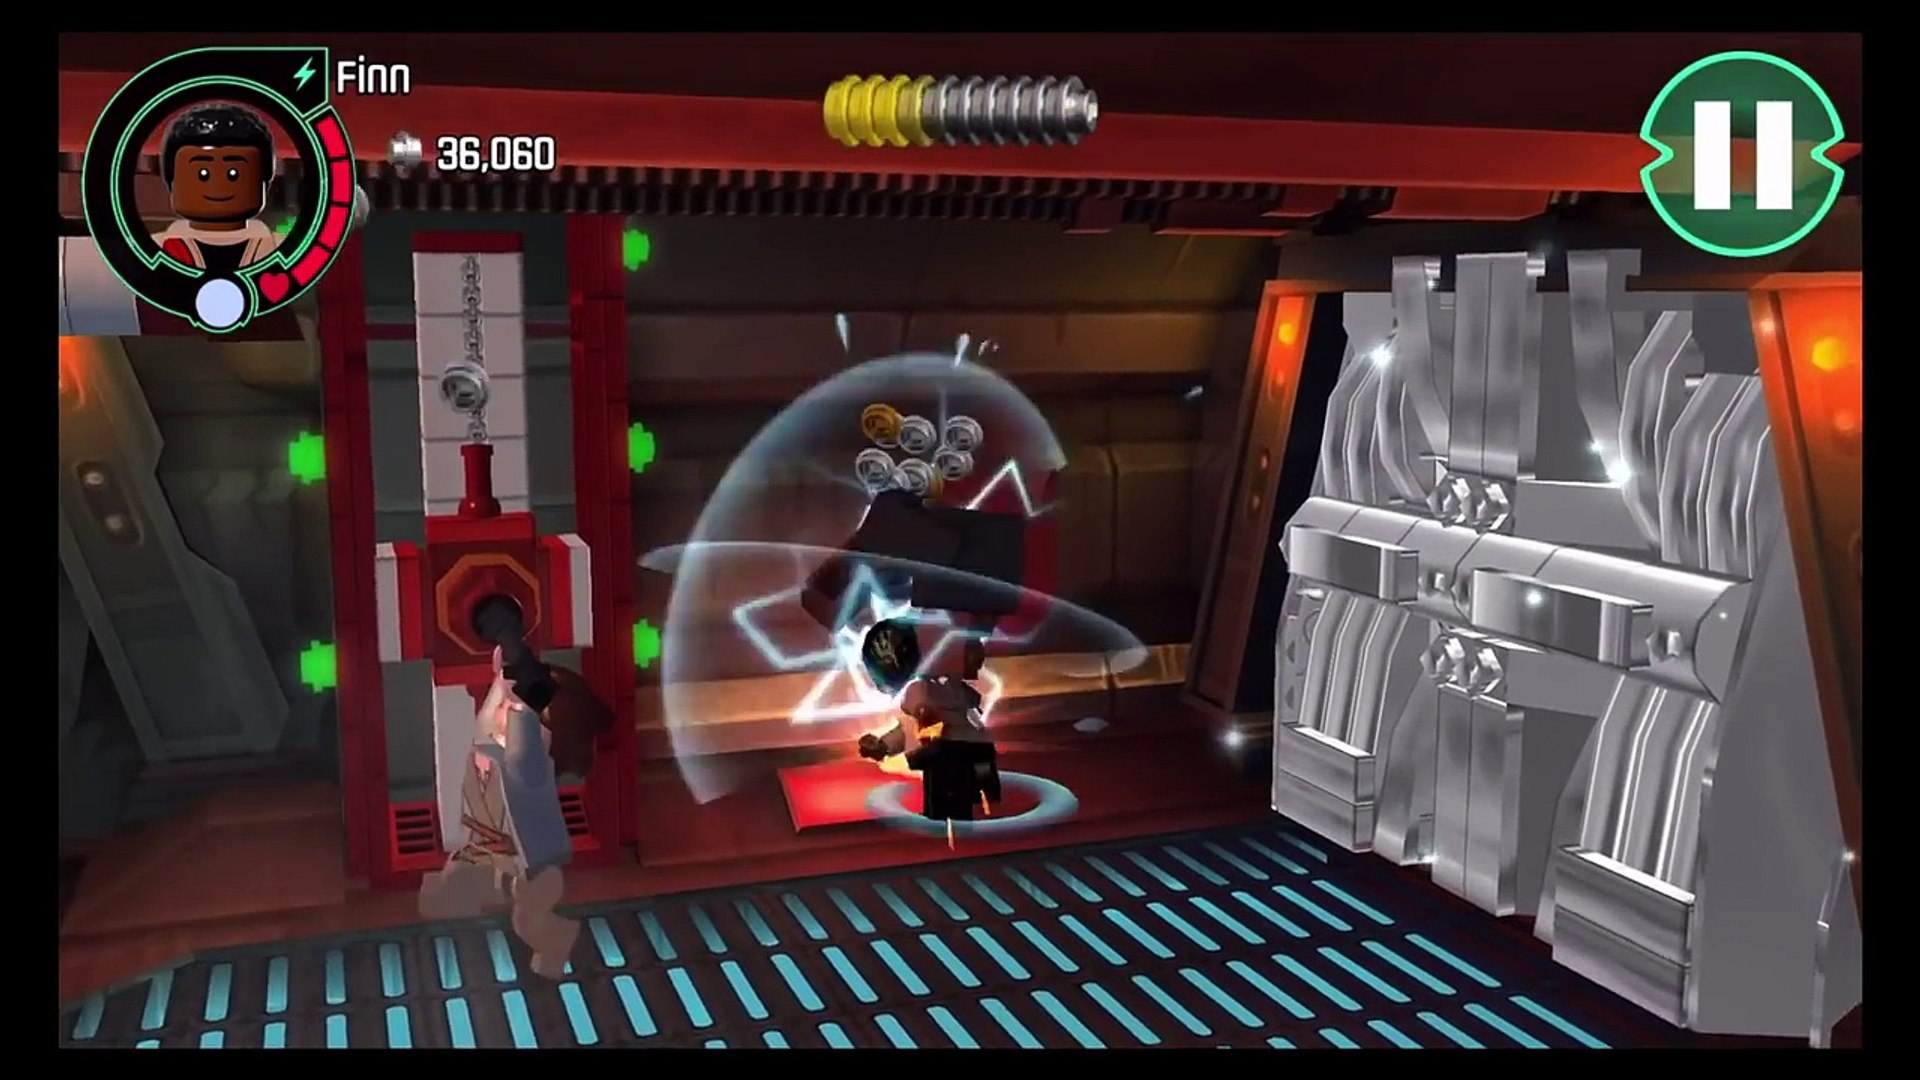 Lego Star Wars The Force Awakens Ios Android Walkthrough Gameplay Part 4 Video Dailymotion